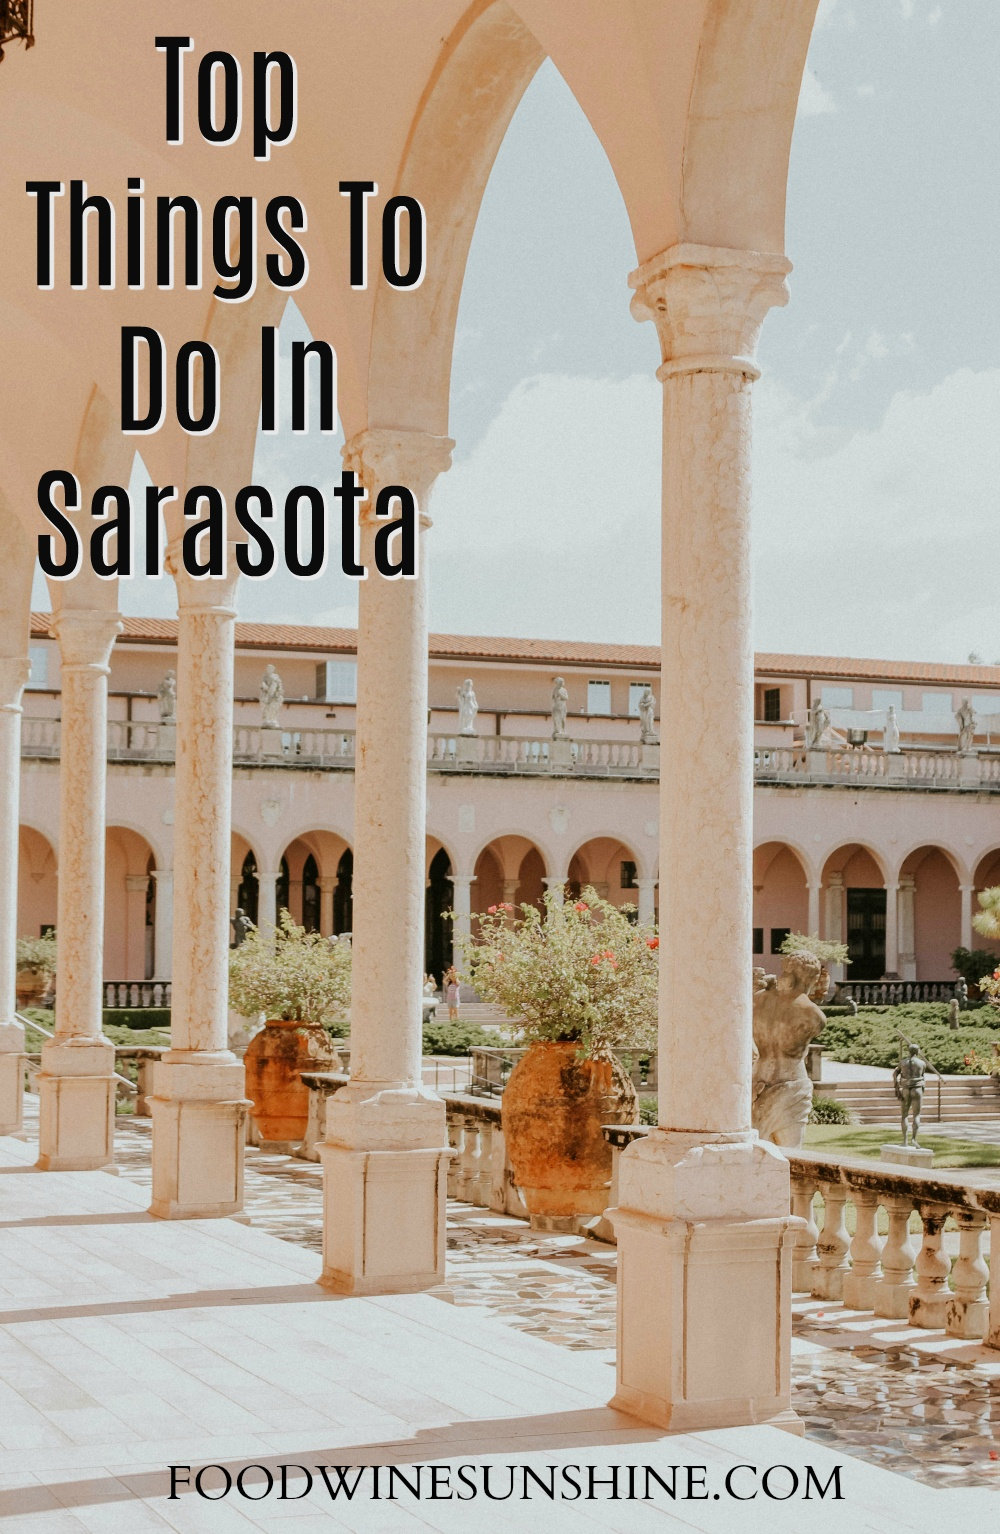 Best Things To Do In Sarasota Florida